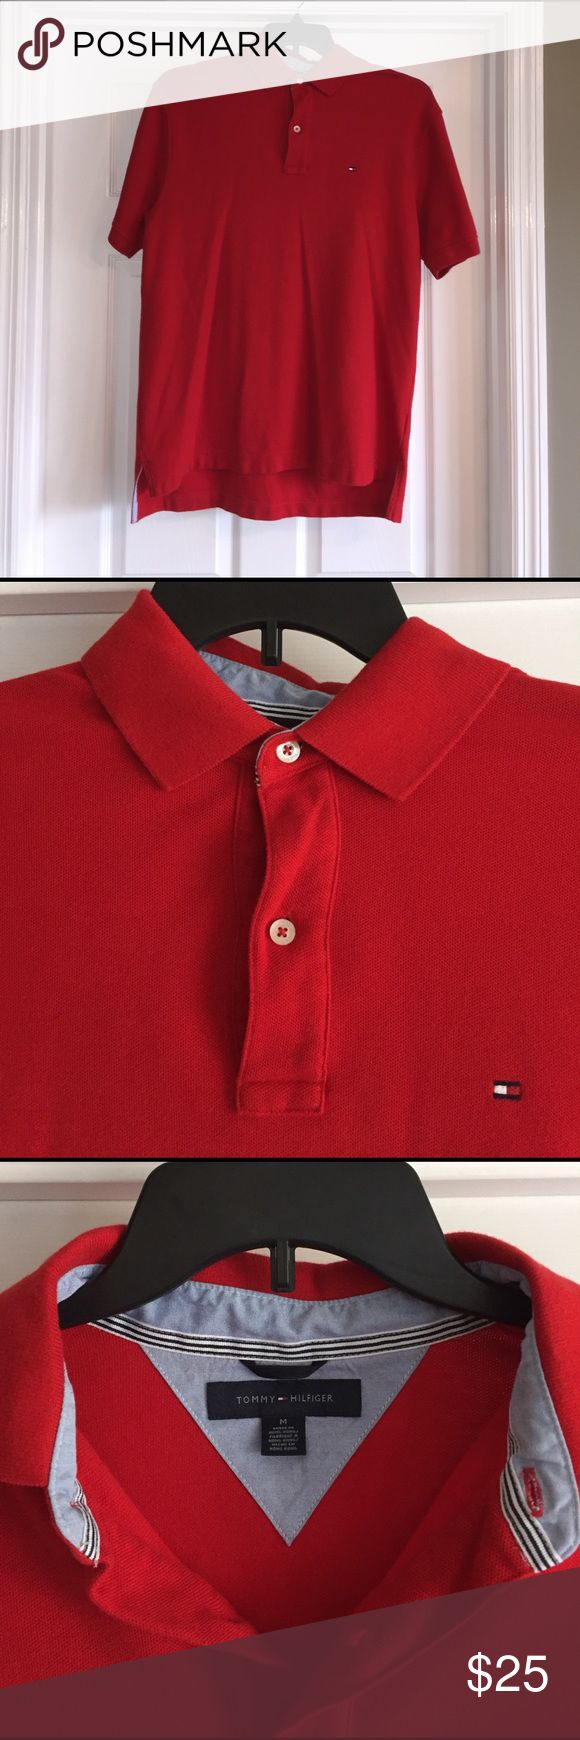 Tommy Hilfiger Polo Shirt Beautiful bright red Men's Tommy Hilfiger Polo Shirt. 2 button, size Medium, NWOT, Tommy Hilfiger Shirts Polos